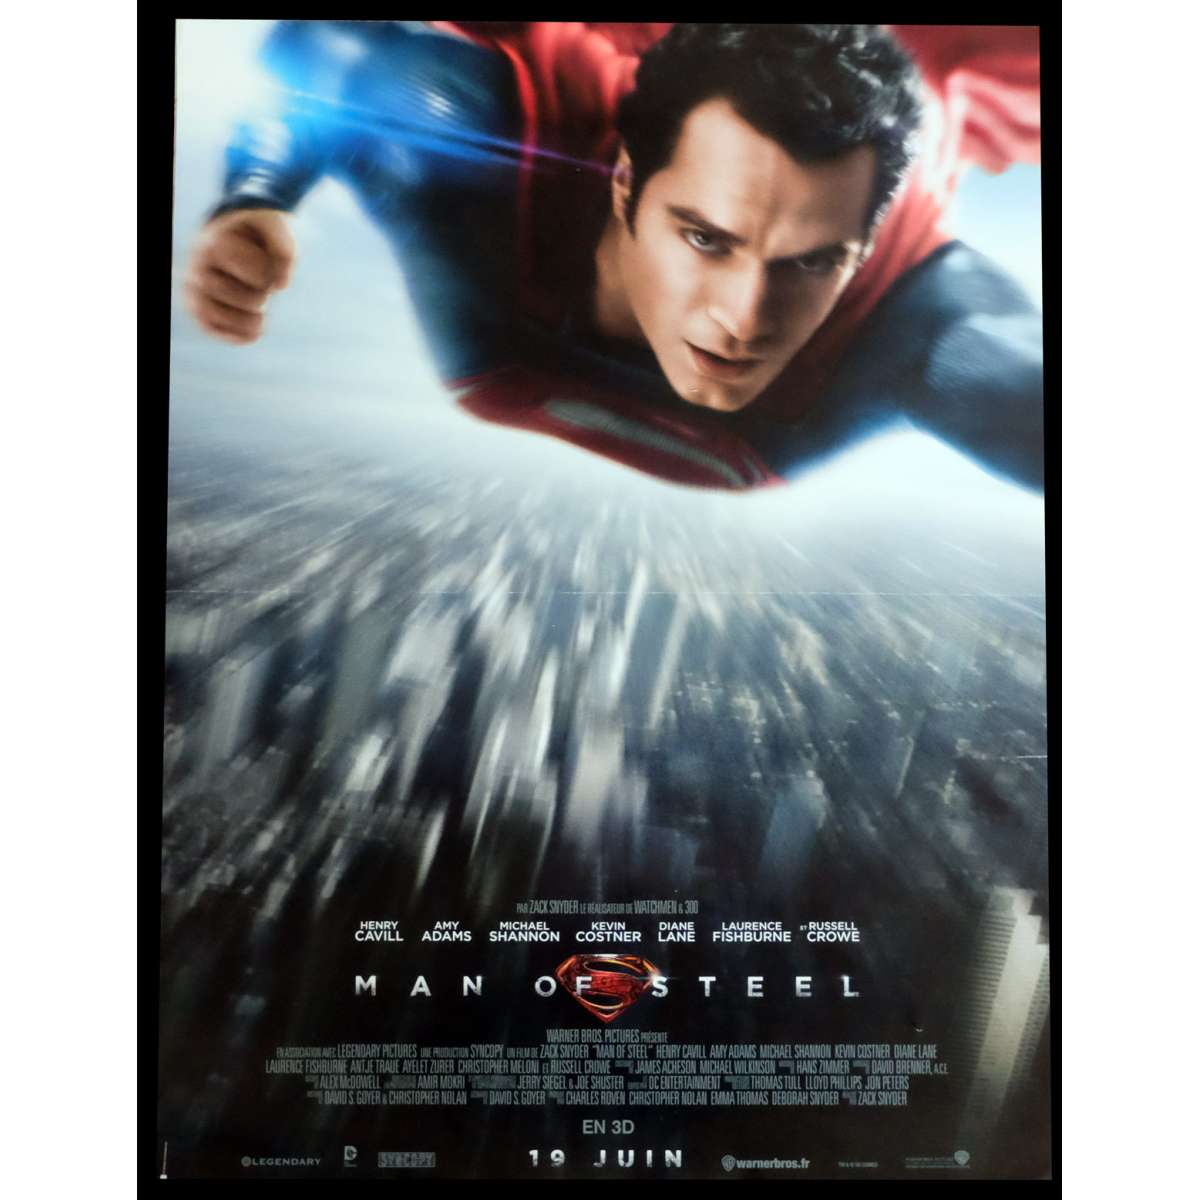 MAN OF STEEL French Movie Poster 15x21